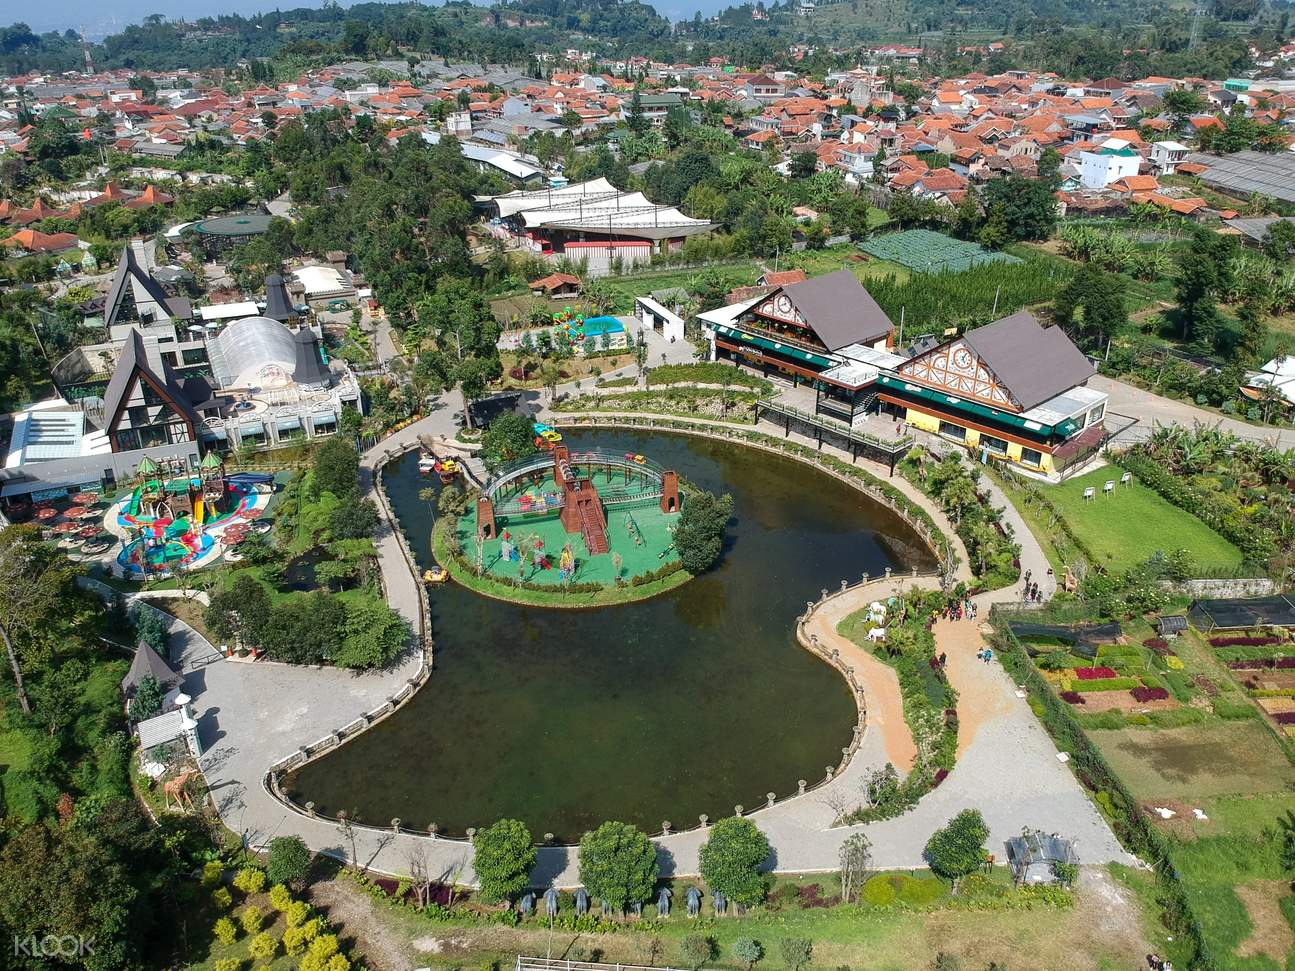 a panoramic view of the Lembang Park and Zoo